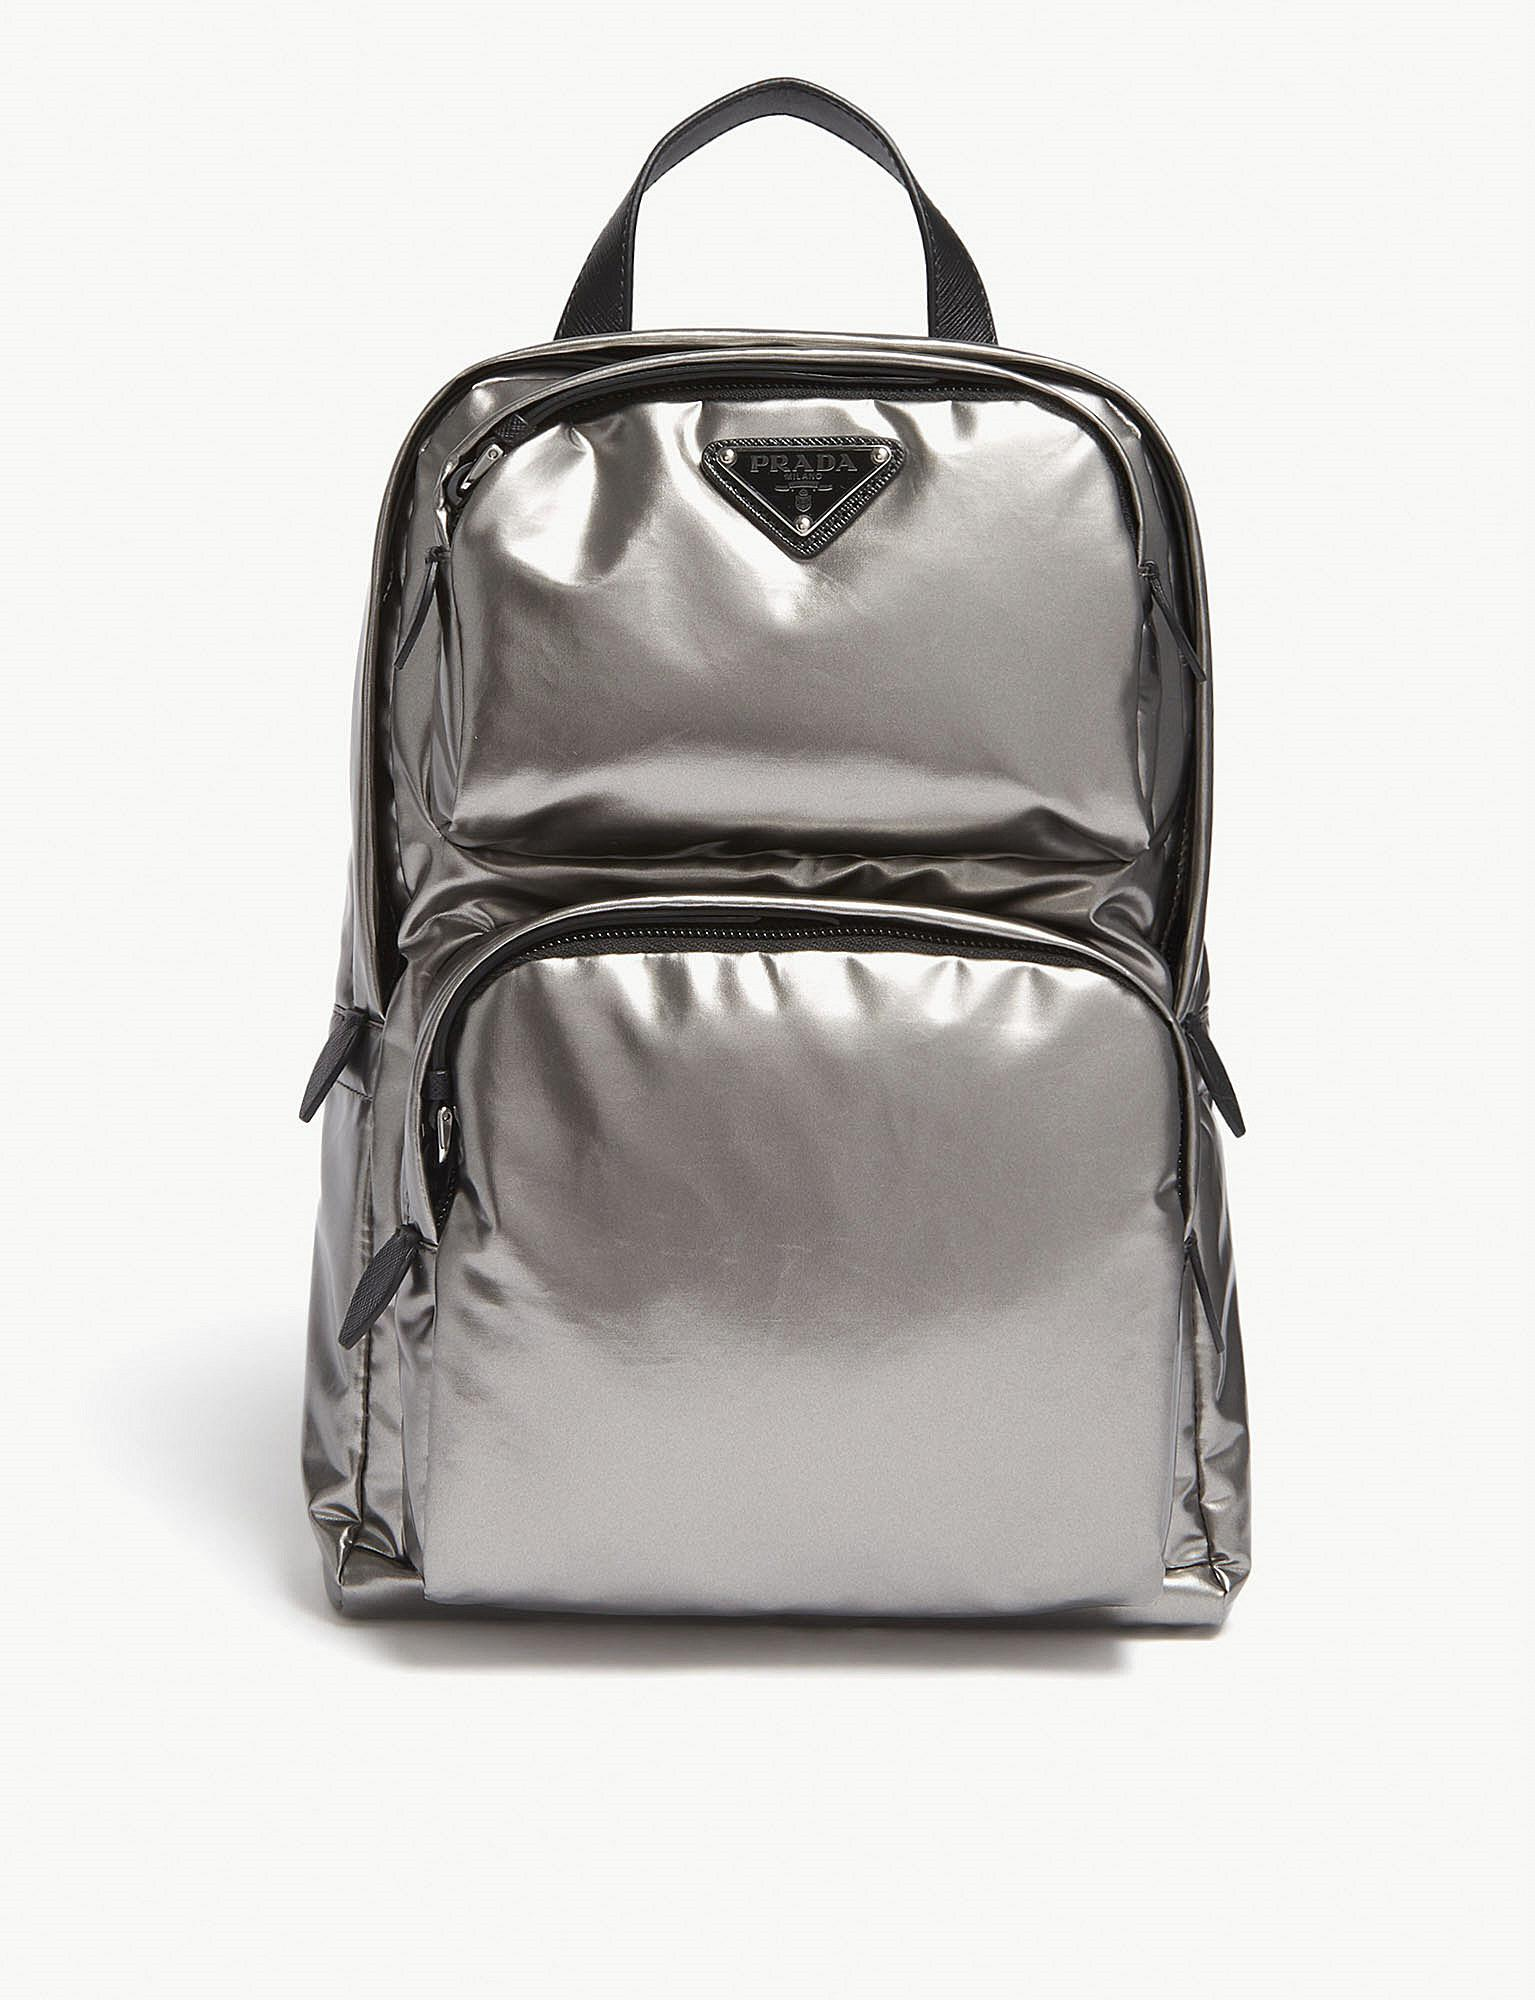 efaefc0aa586a8 ... low cost lyst prada metallic silver leather technical backpack in  metallic e25fe 63fa4